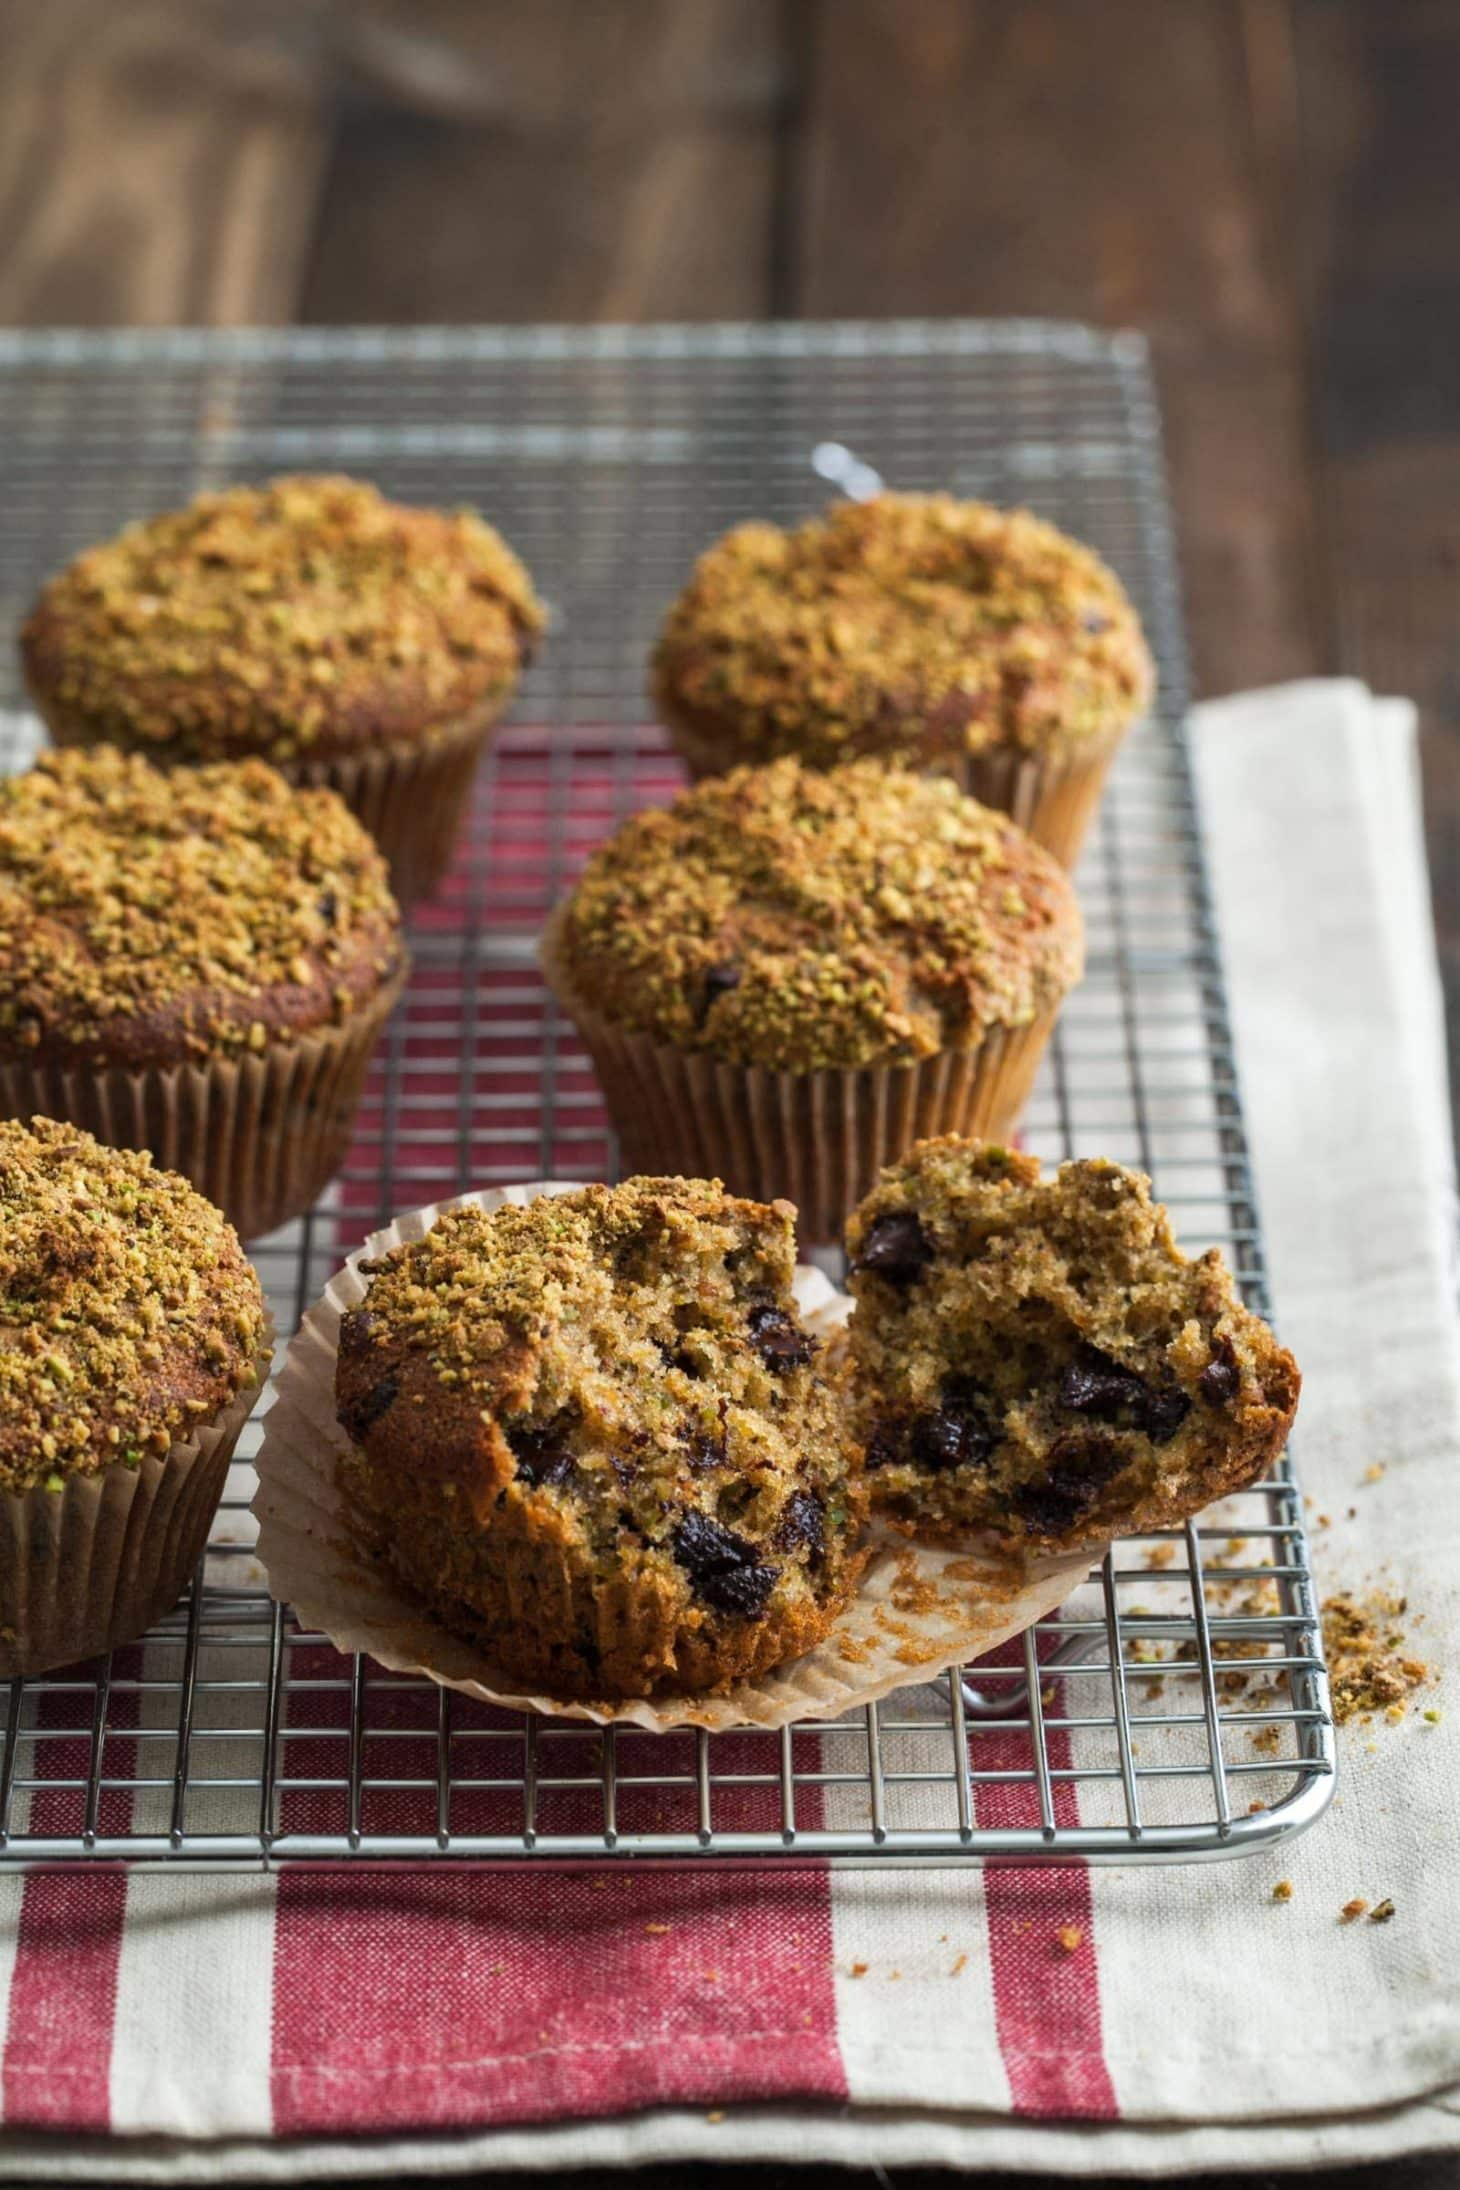 Pistachio Muffins with Dark Chocolate Chips